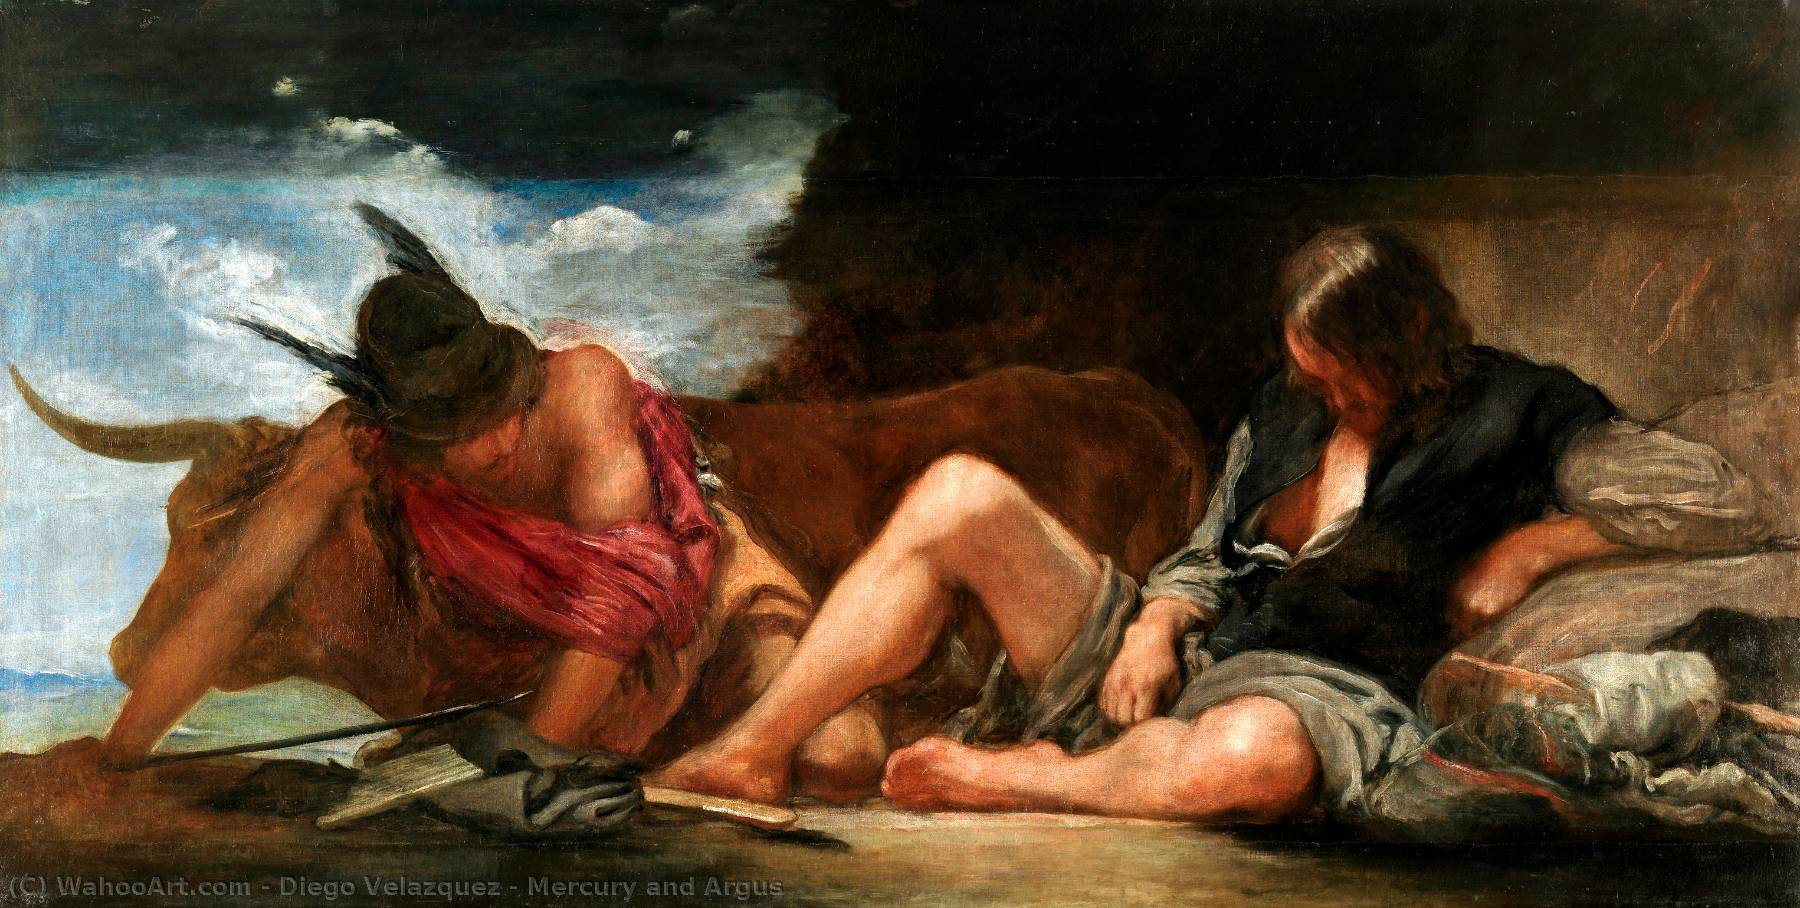 Mercury and Argus, Oil On Canvas by Diego Velazquez (1599-1660, Spain)